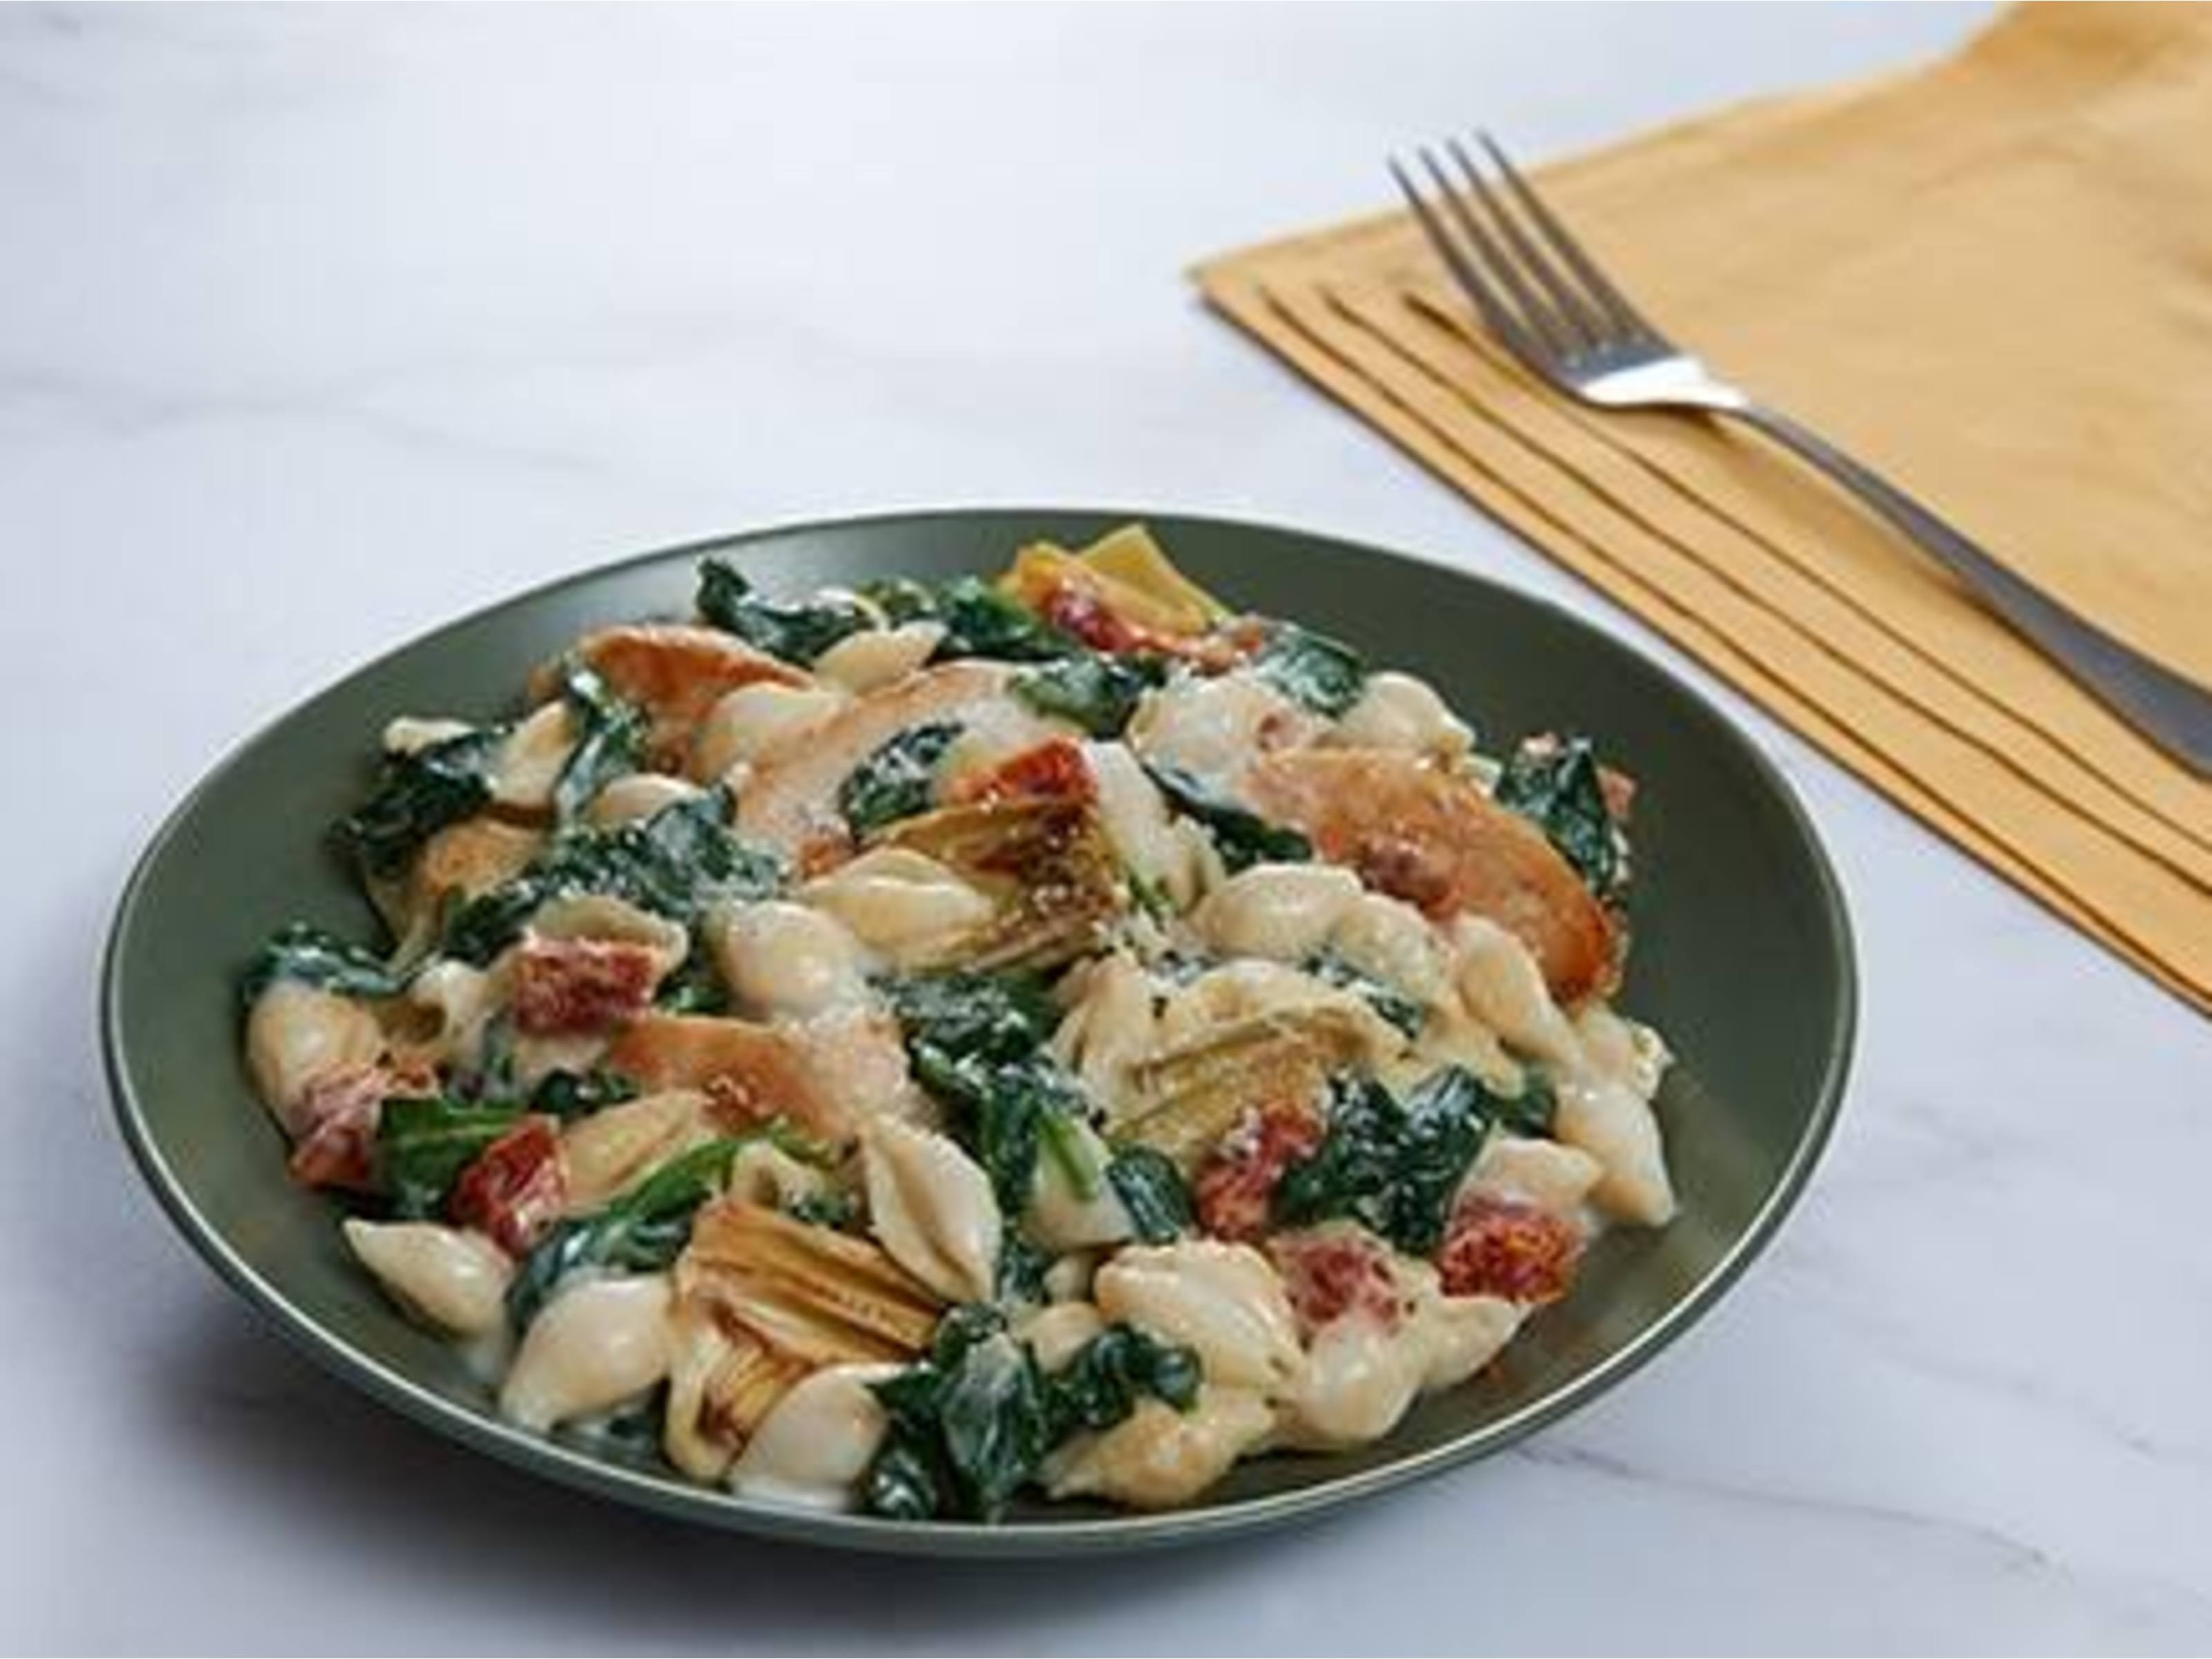 Spinach Artichoke Chicken & Pasta